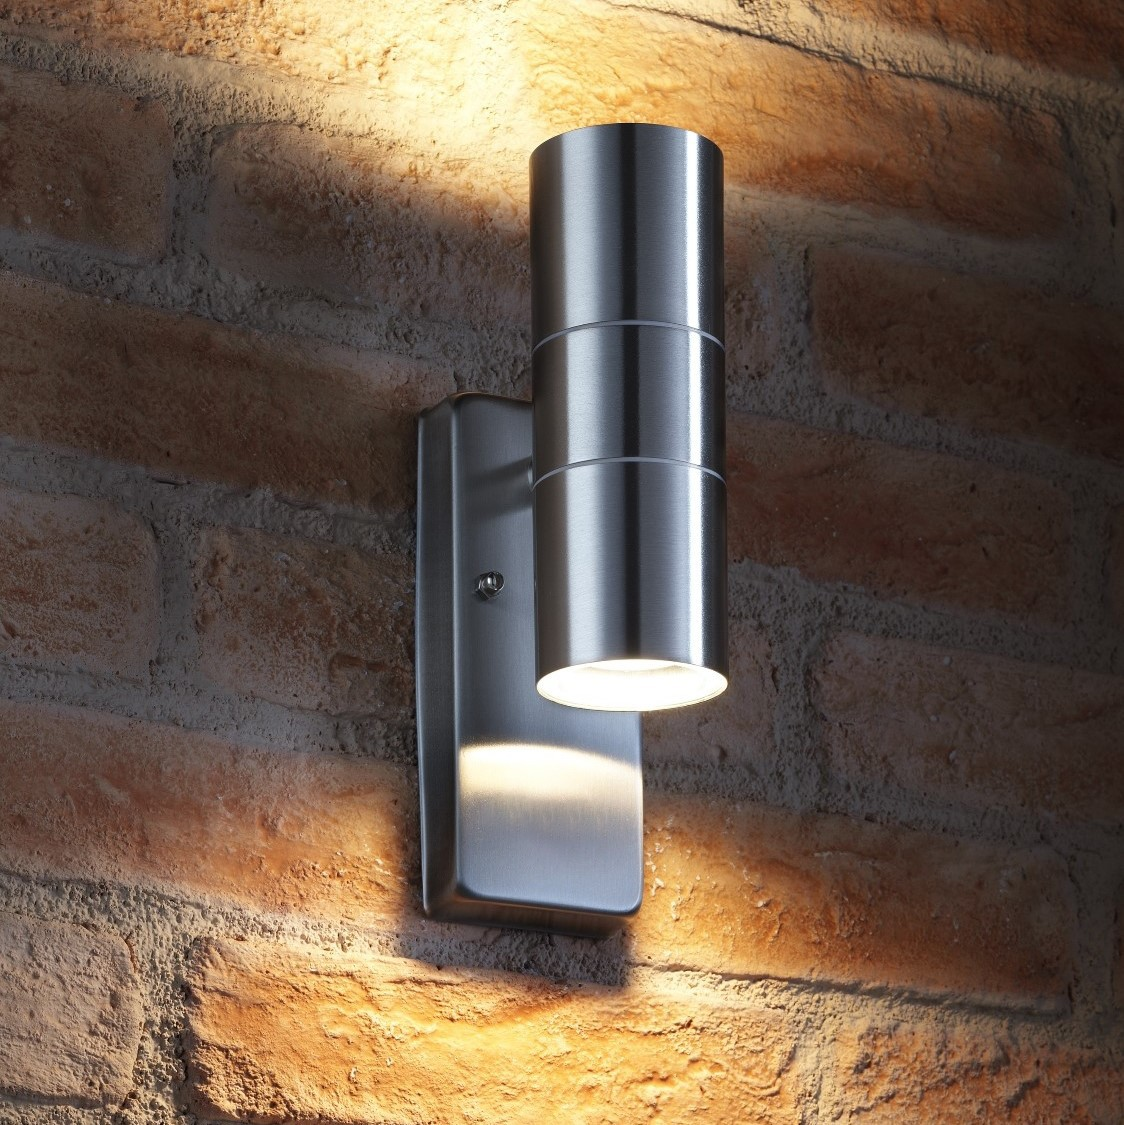 Auraglow dusk till dawn sensor up down outdoor wall light avebury stainless steel